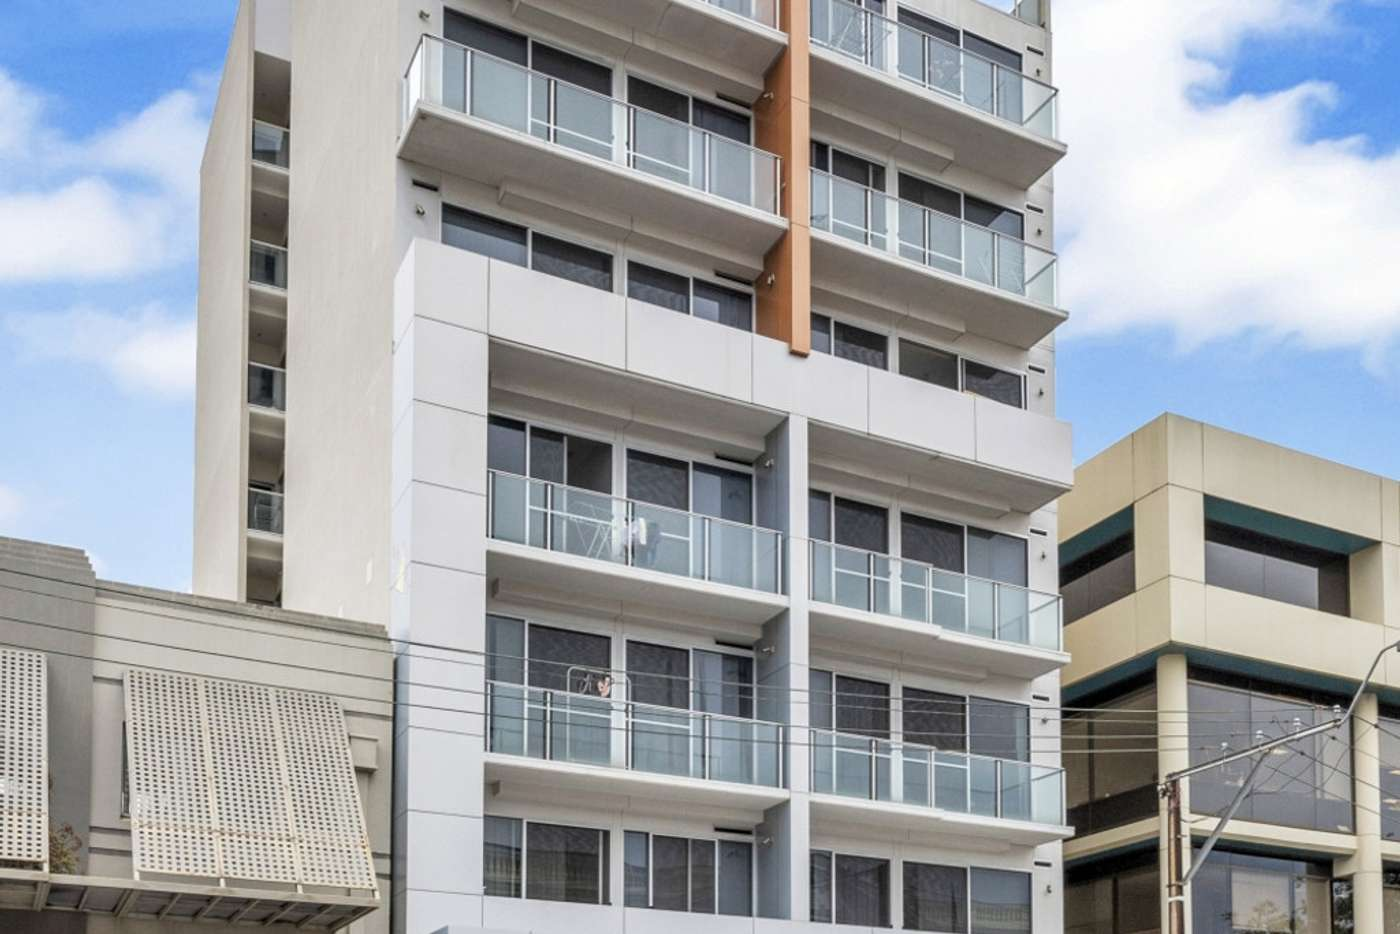 Main view of Homely apartment listing, 503/235-237 Pirie Street, Adelaide SA 5000